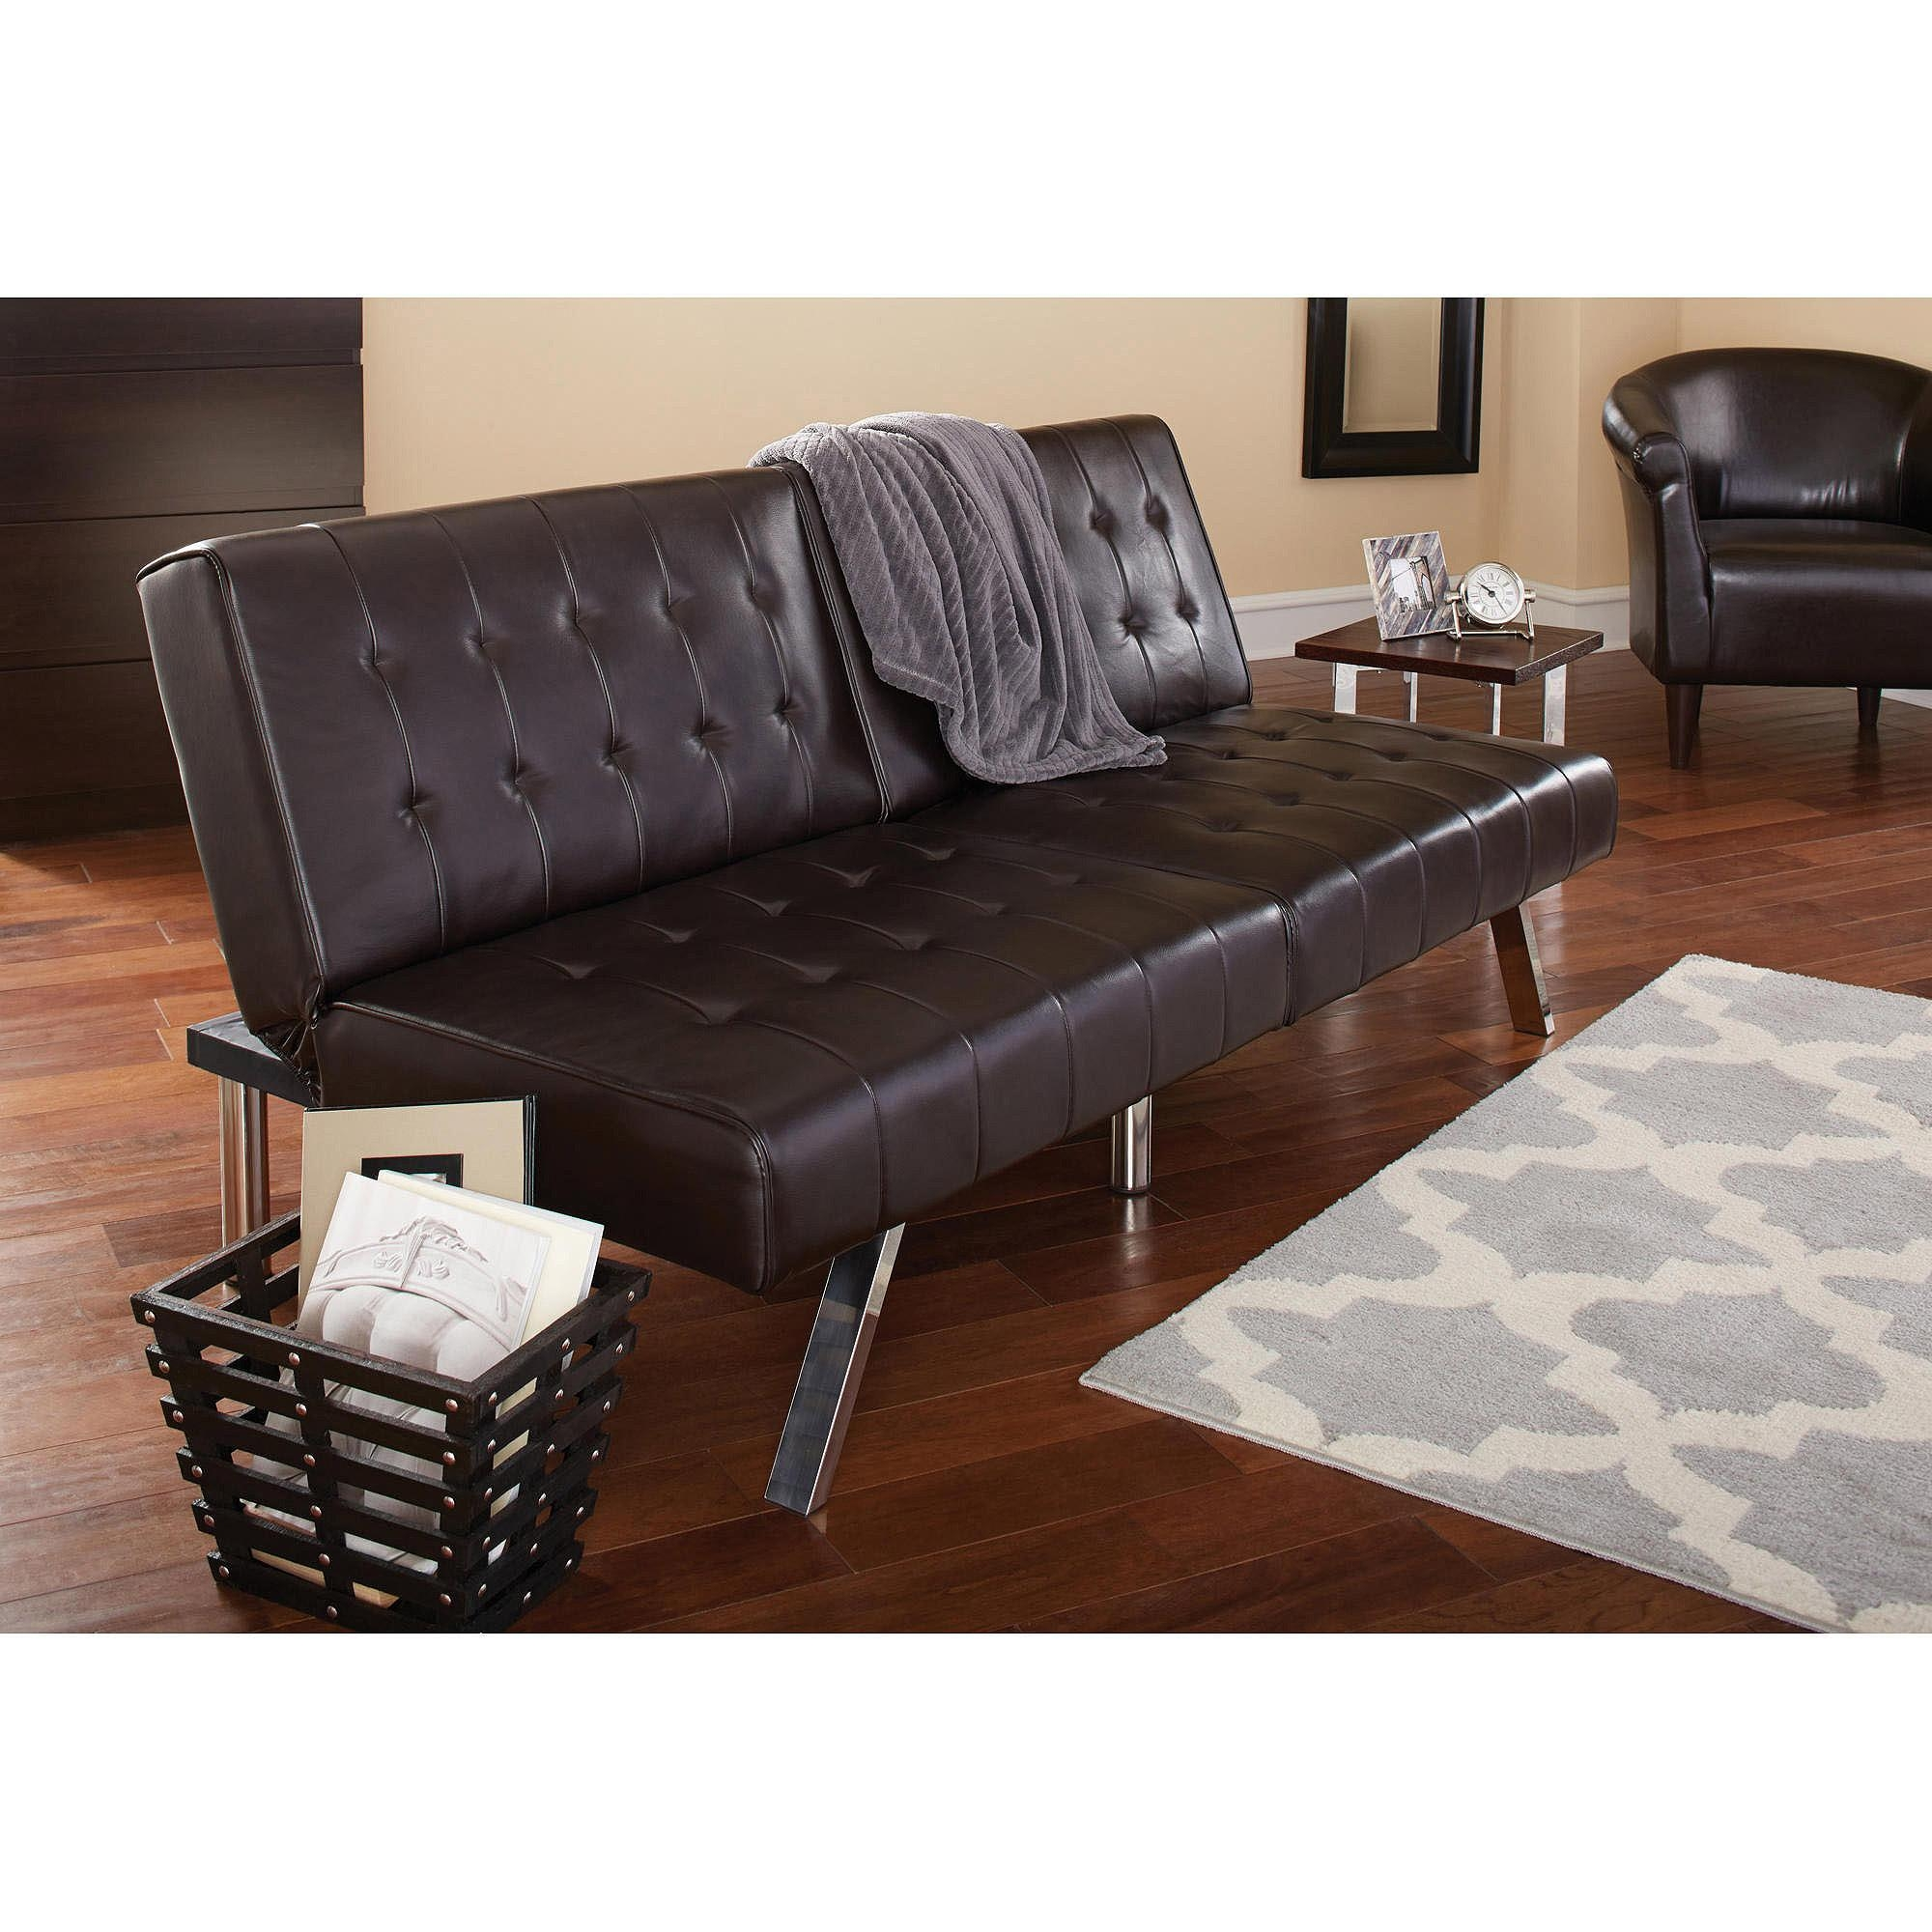 Mainstays Morgan Faux Leather Tufted Convertible Futon, Brown Throughout Faux Leather Futon Sofas (Image 12 of 20)